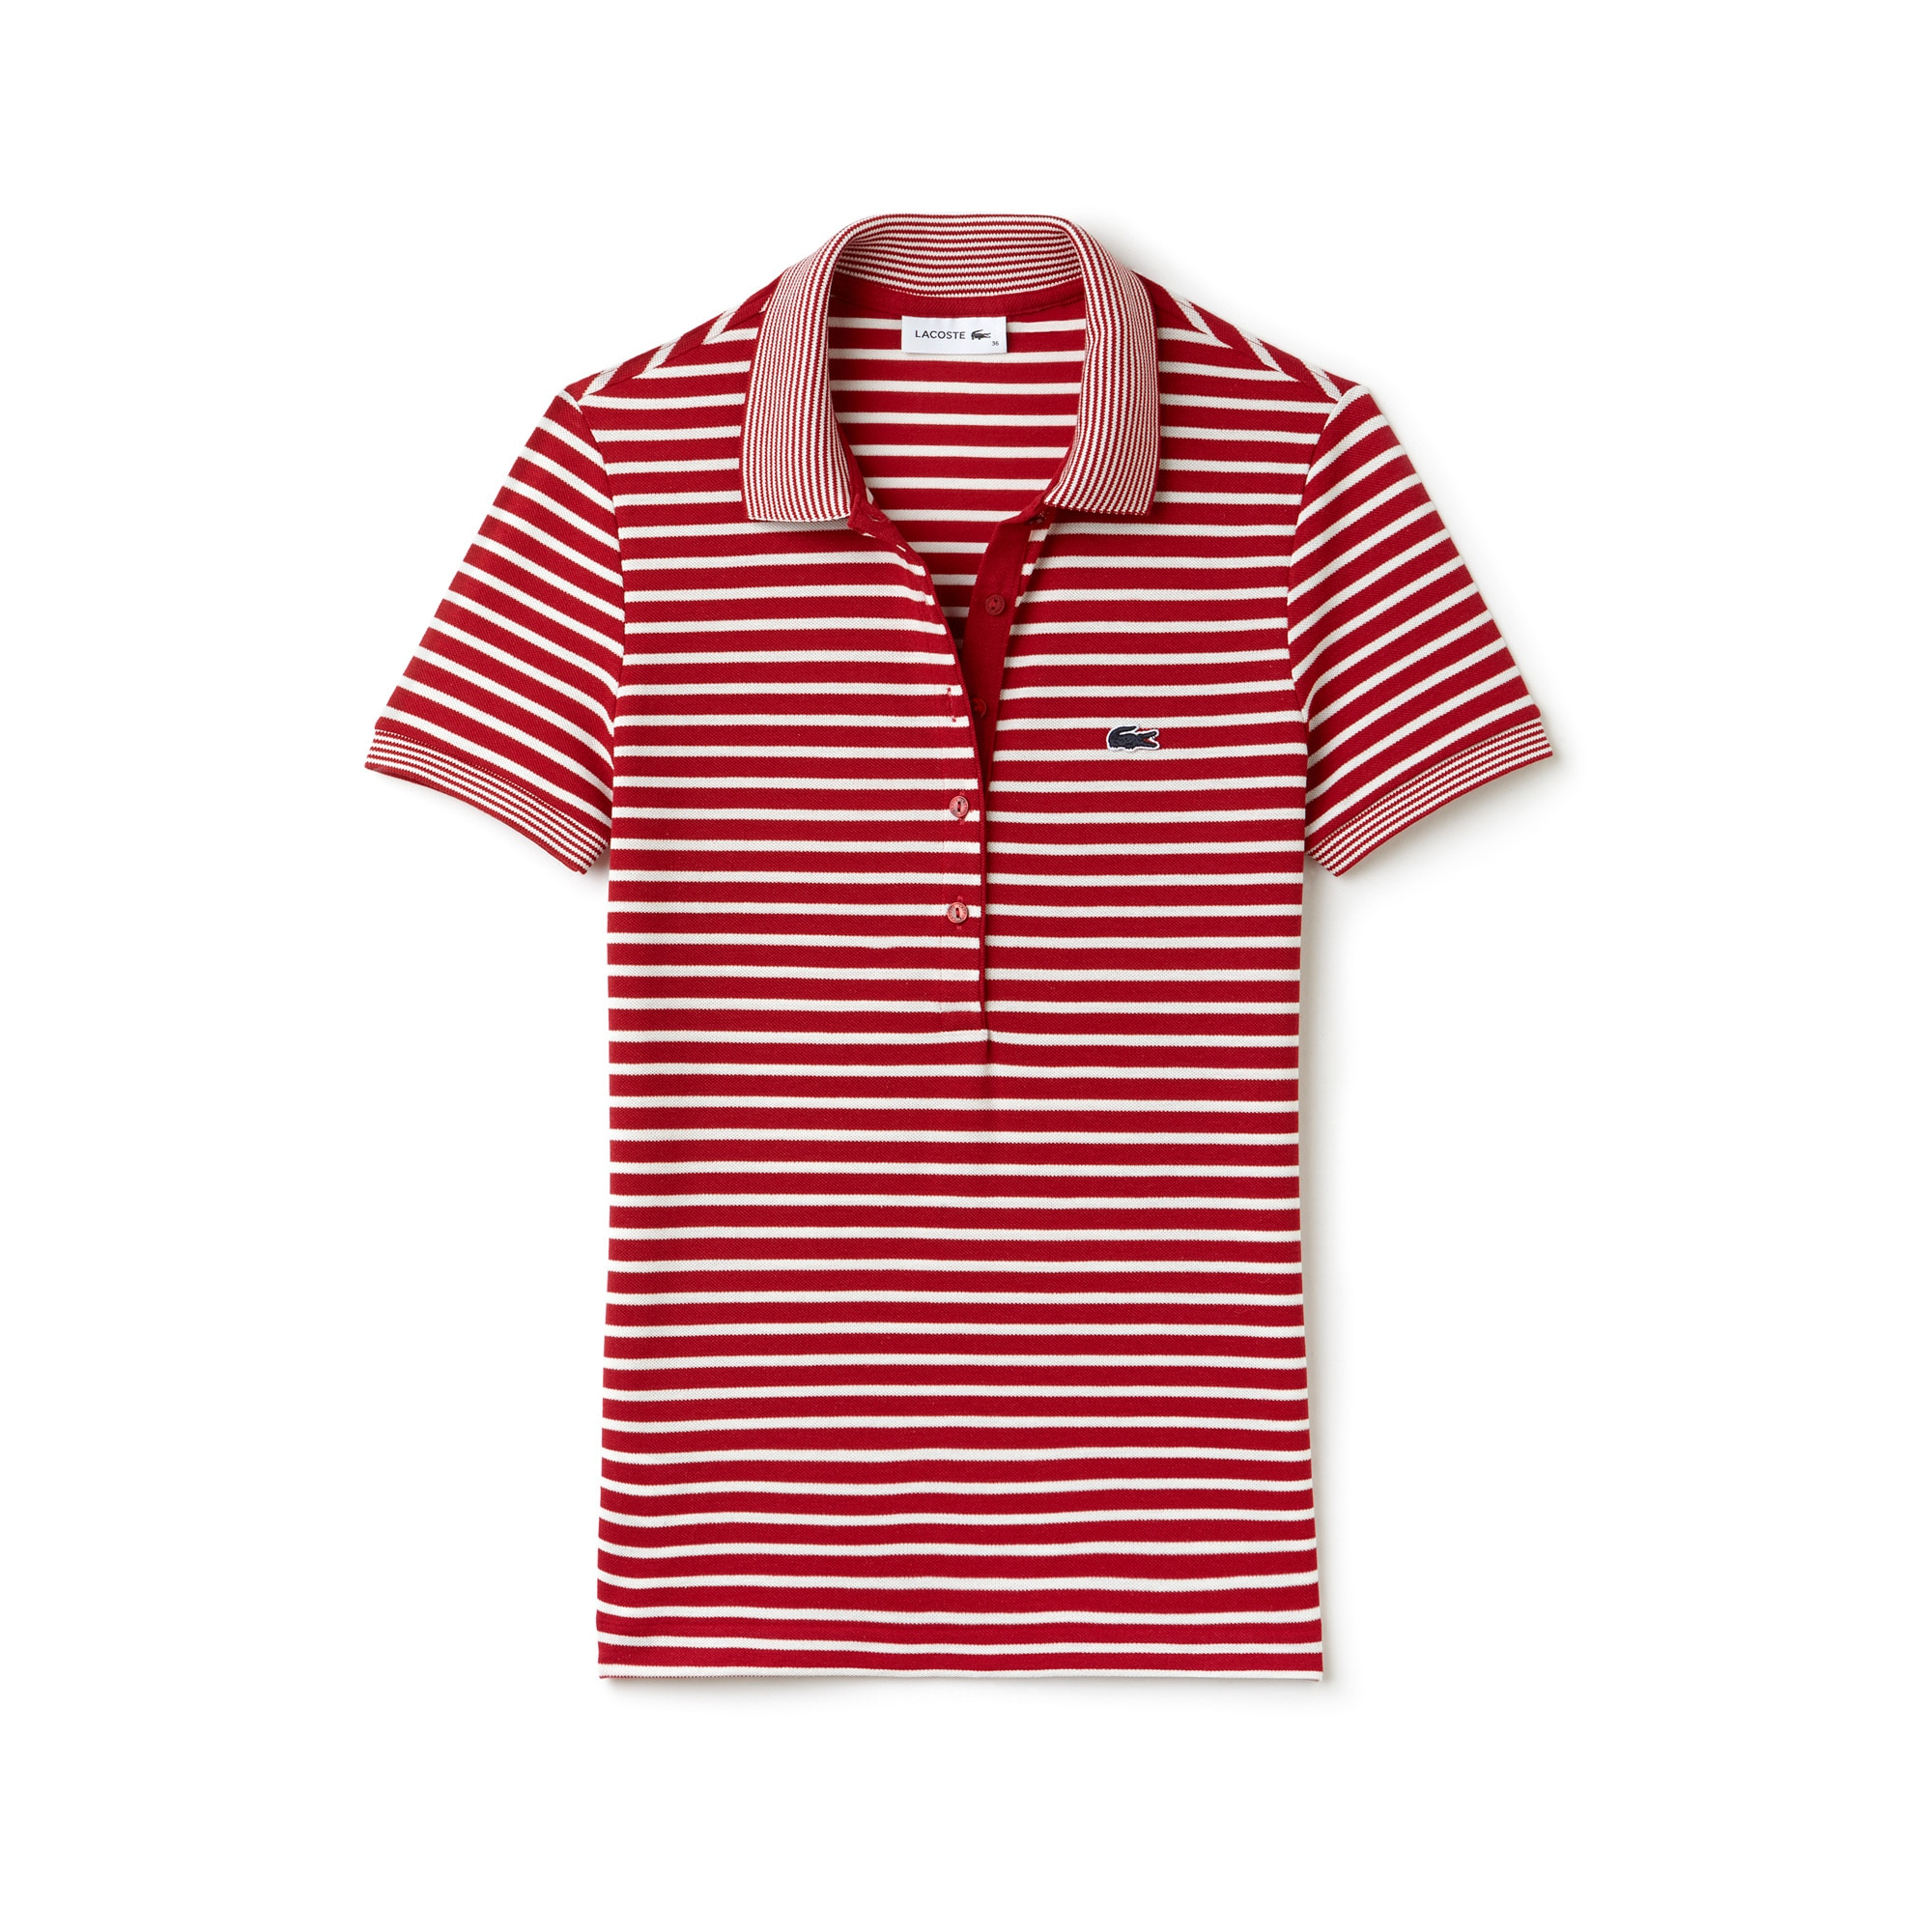 bf0fa1c3f9 Women's Lacoste Slim Fit Striped Mini Piqué Polo Shirt | LACOSTE